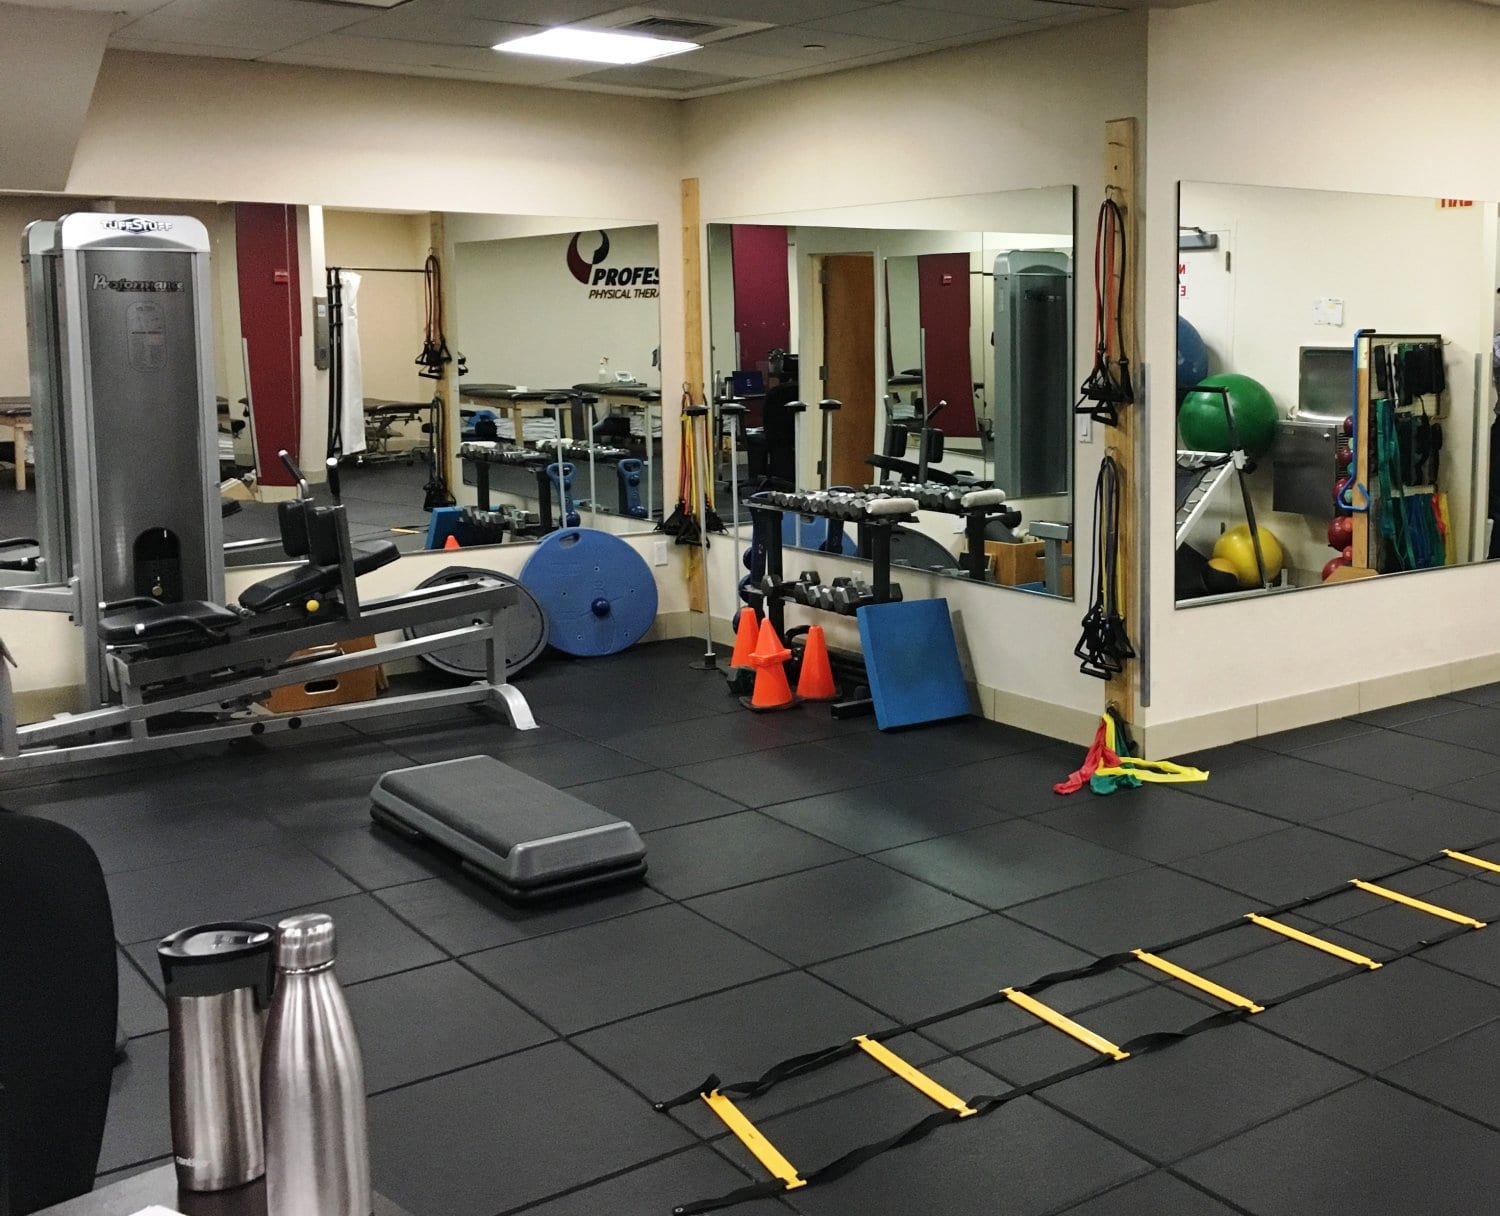 Here is an image of equipment like stretch bands used at our physical therapy clinic in Manhattan, New York City at Midtown East on Fifth Avenue.